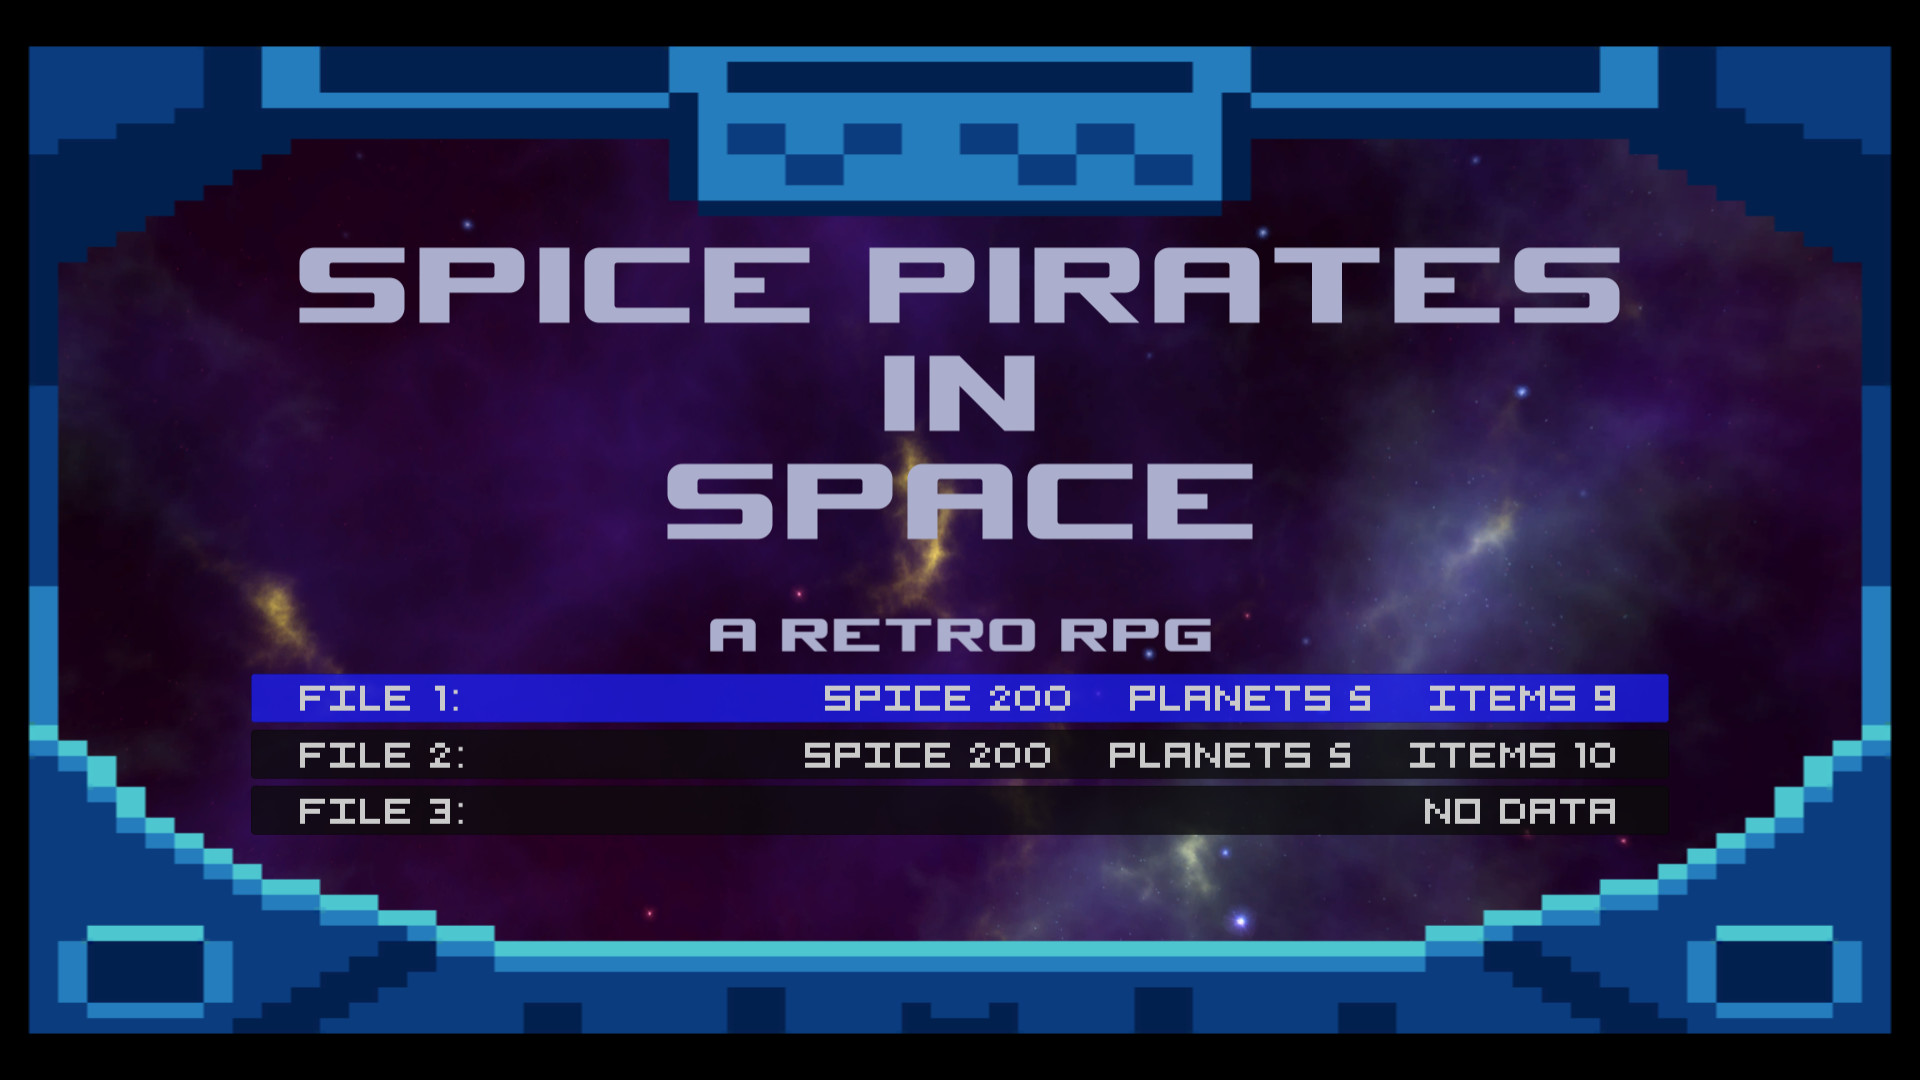 Spice Pirates in Space: A Retro RPG screenshot